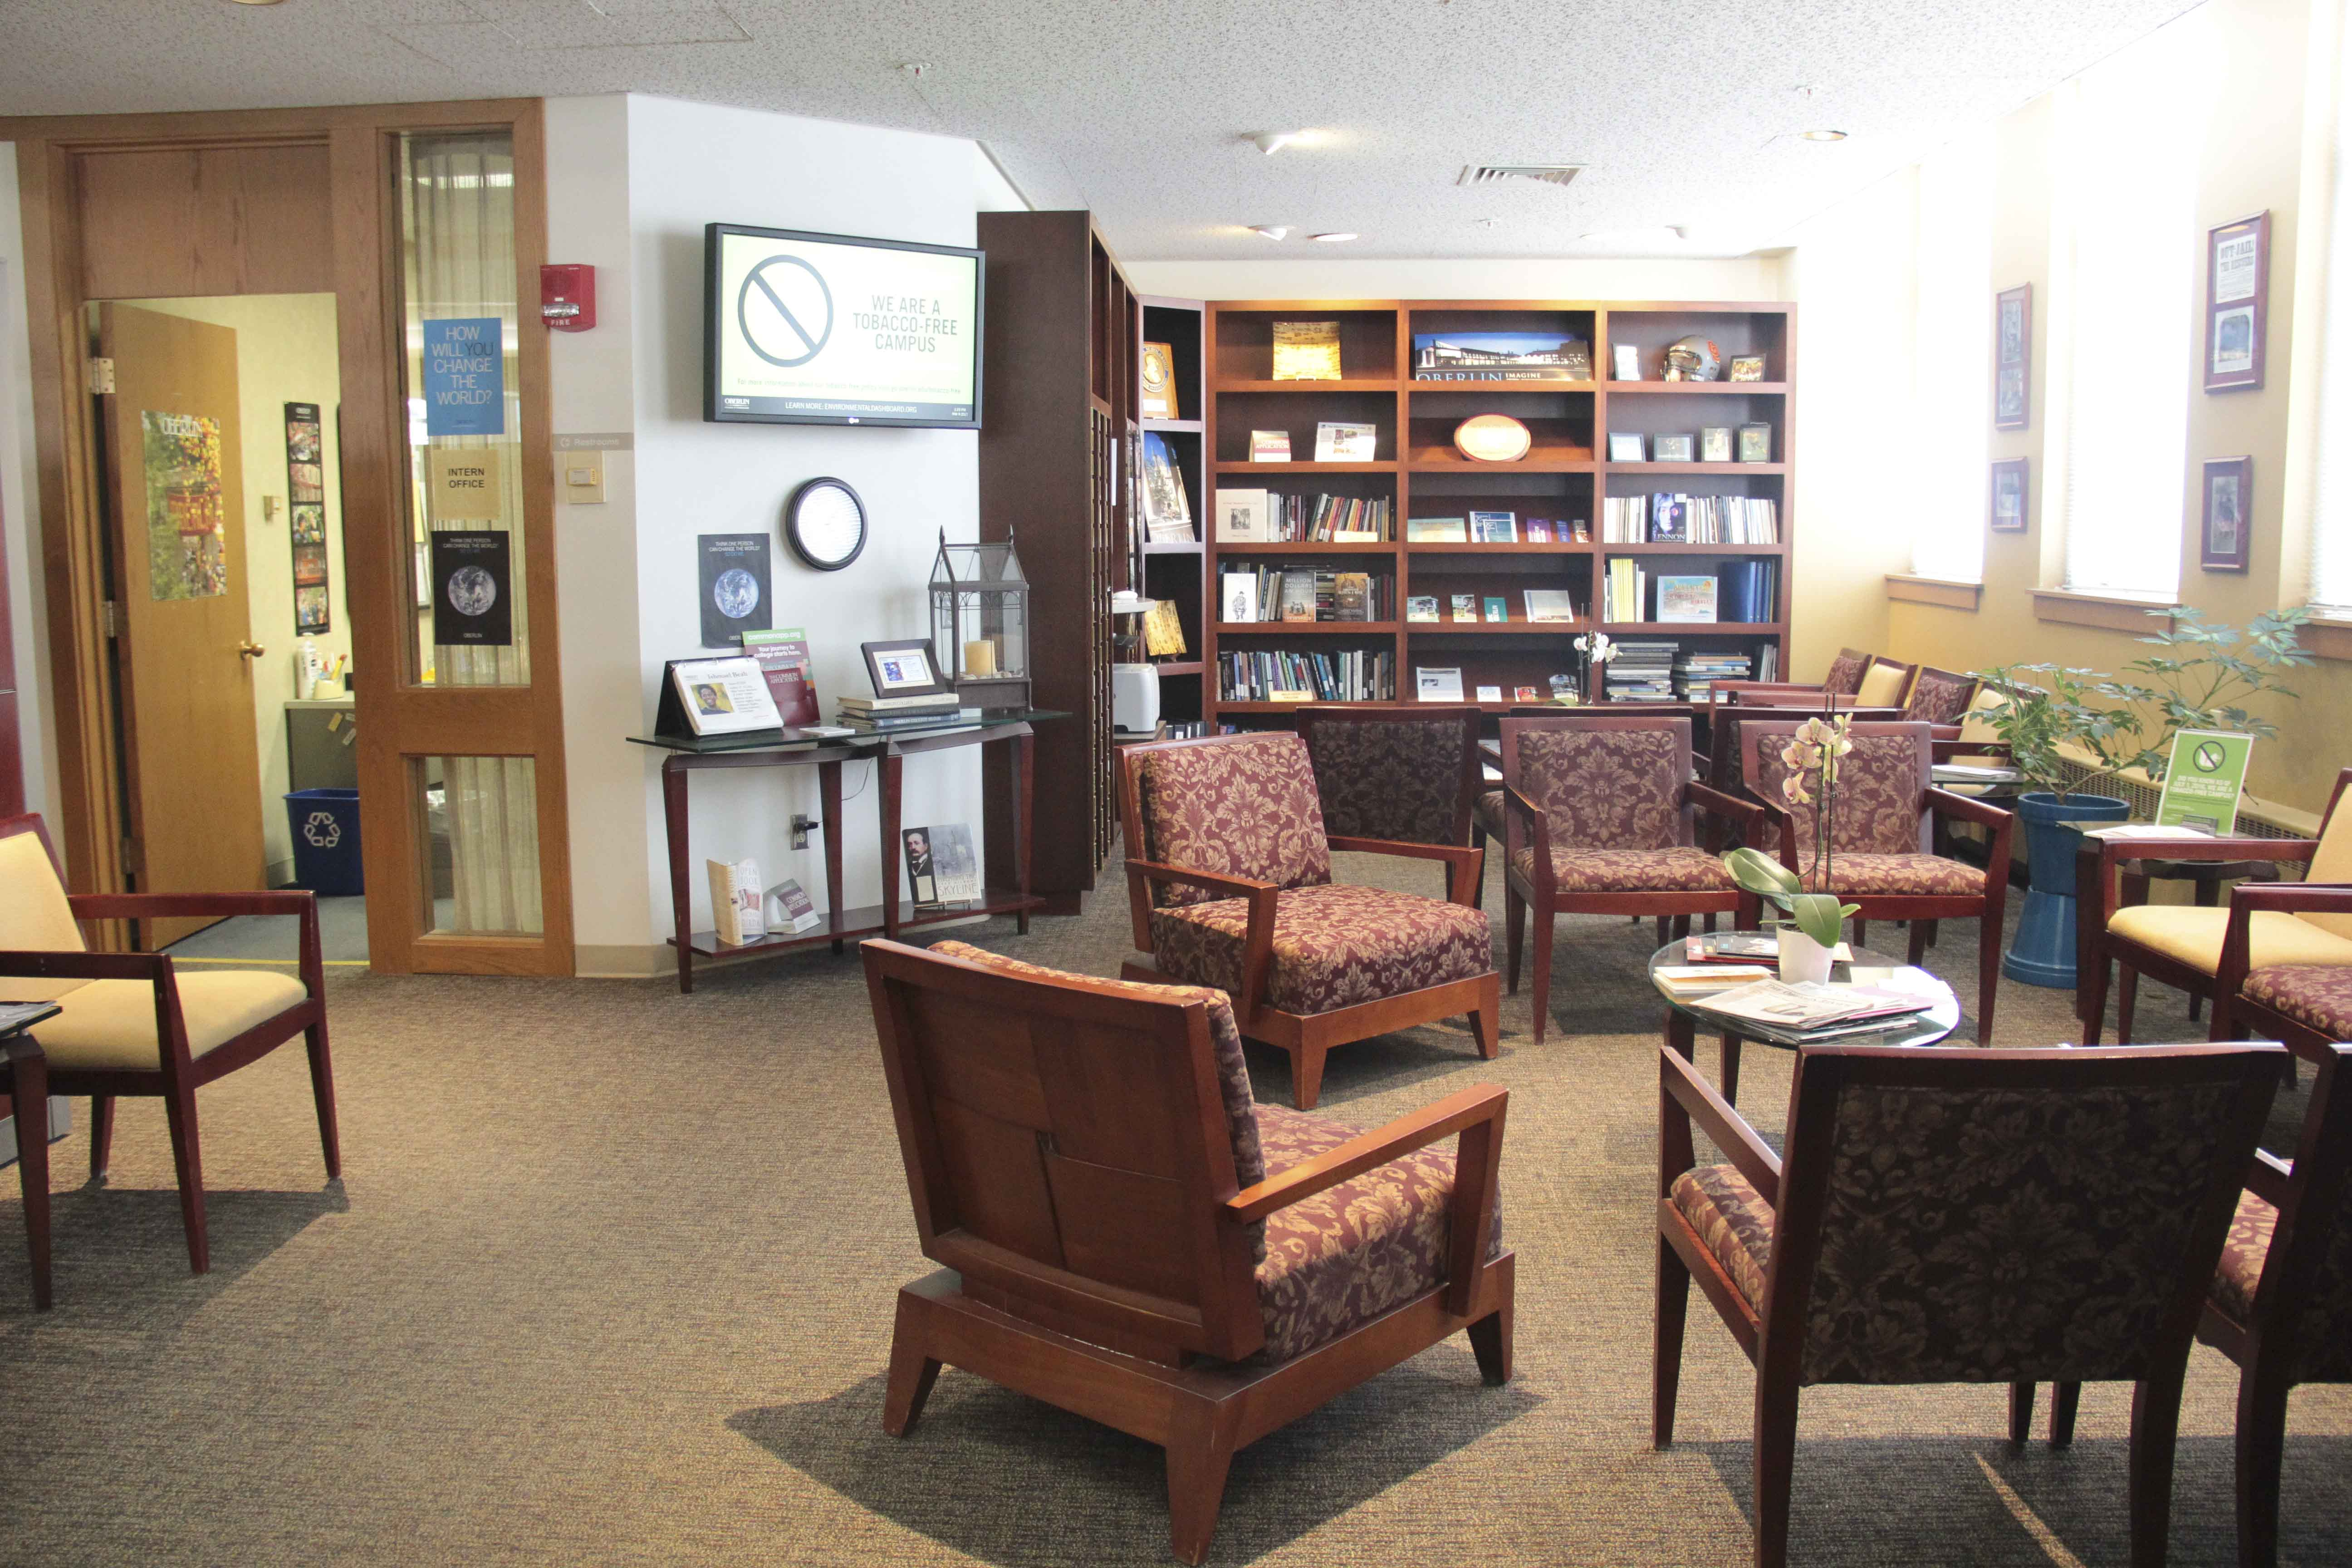 The Admissions office, located on the first floor of the Carnegie Building, will move to the Peter B. Lewis Gateway Center. Some functions of the the Dean of Studies office will be incorporated into a new Academic Advising Resource Center in the former admissions space .